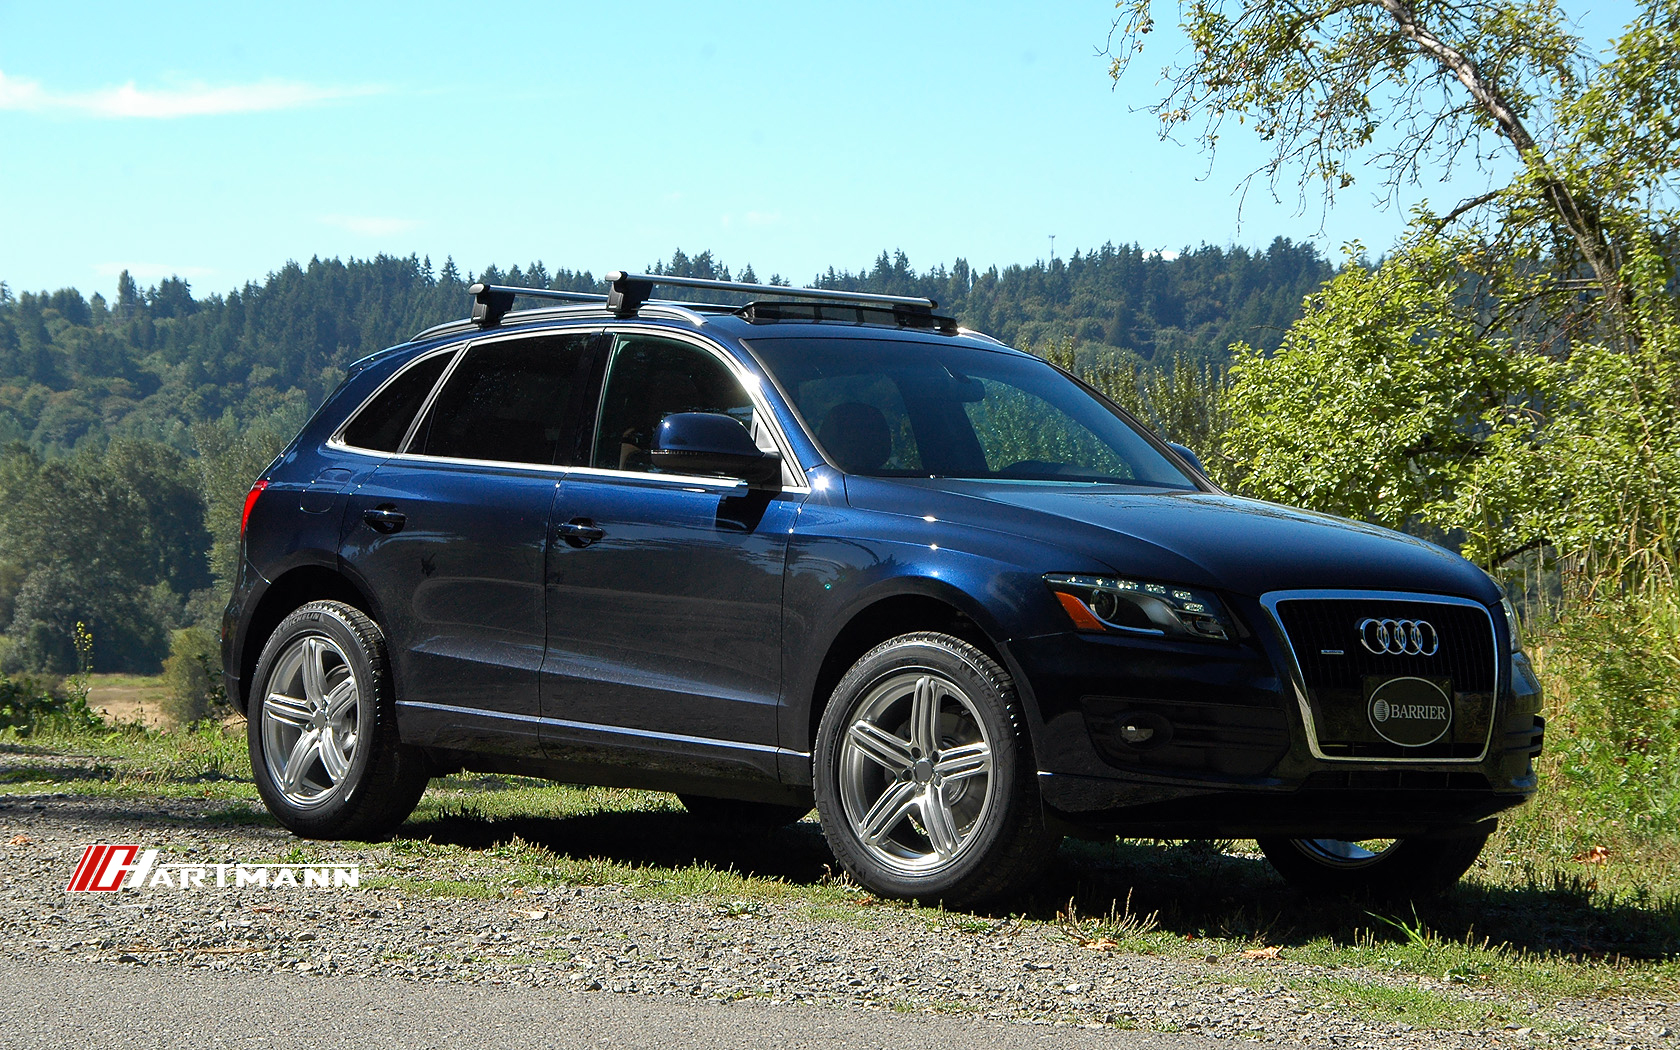 Ebay audi a4 avant tdi s line reviews sline 2012